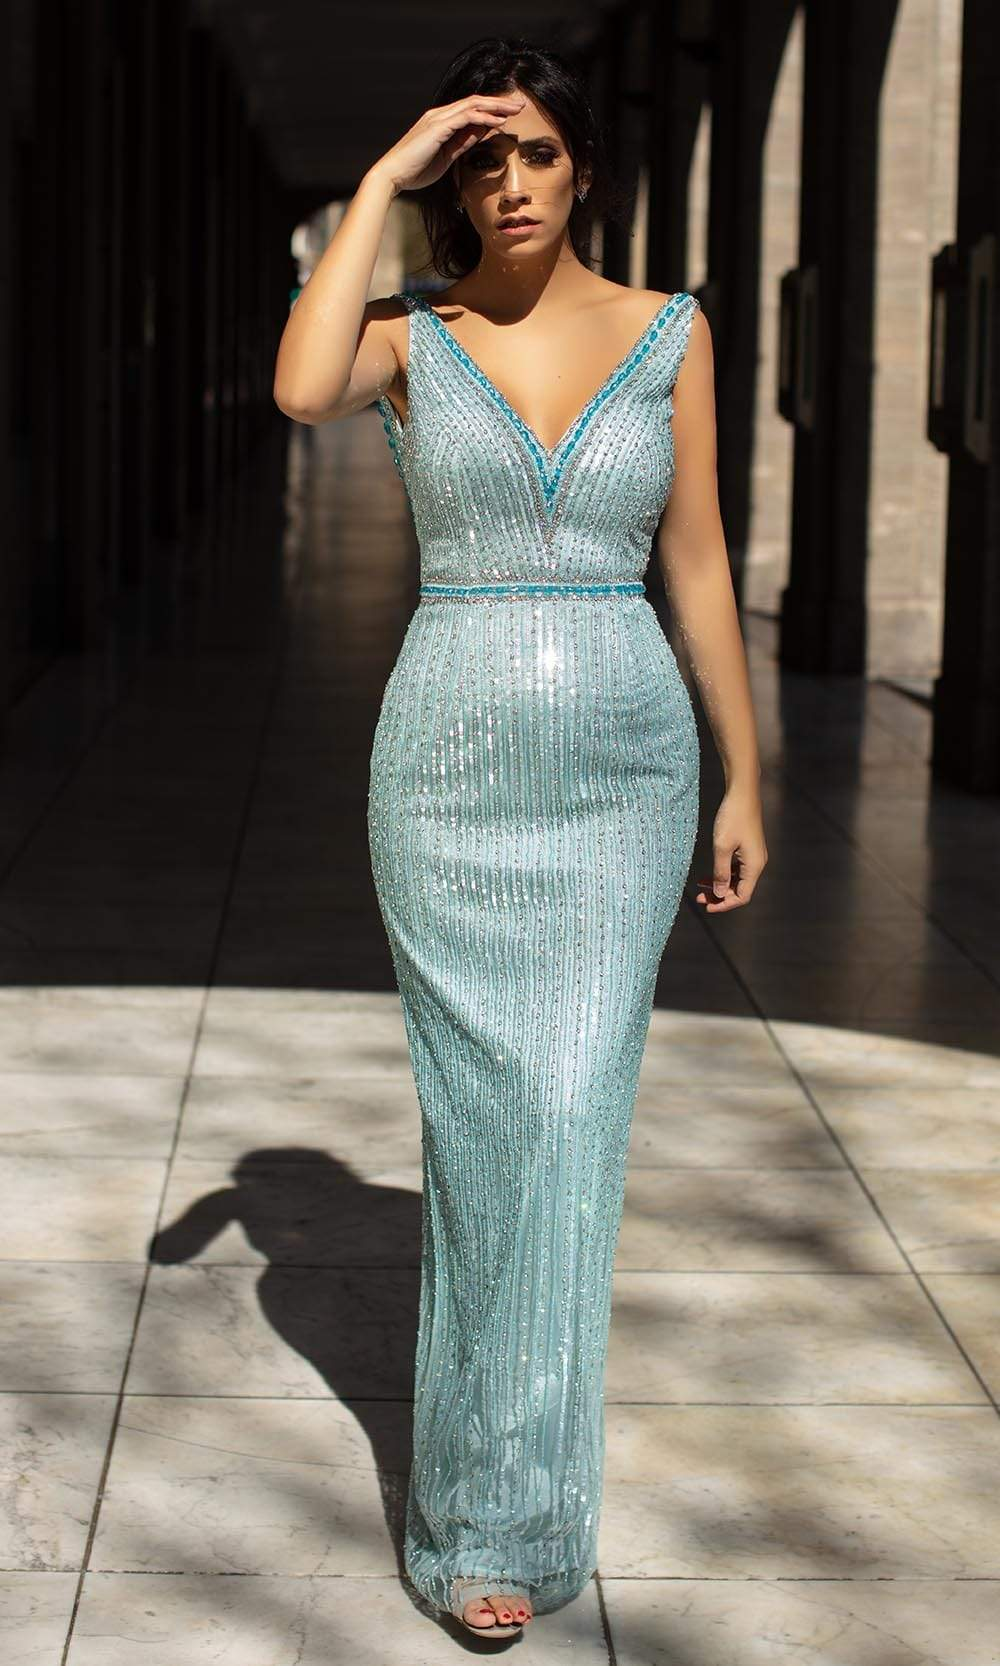 Chic and Holland - AN1408 Backless Beaded Long Dress from Chic and Holland